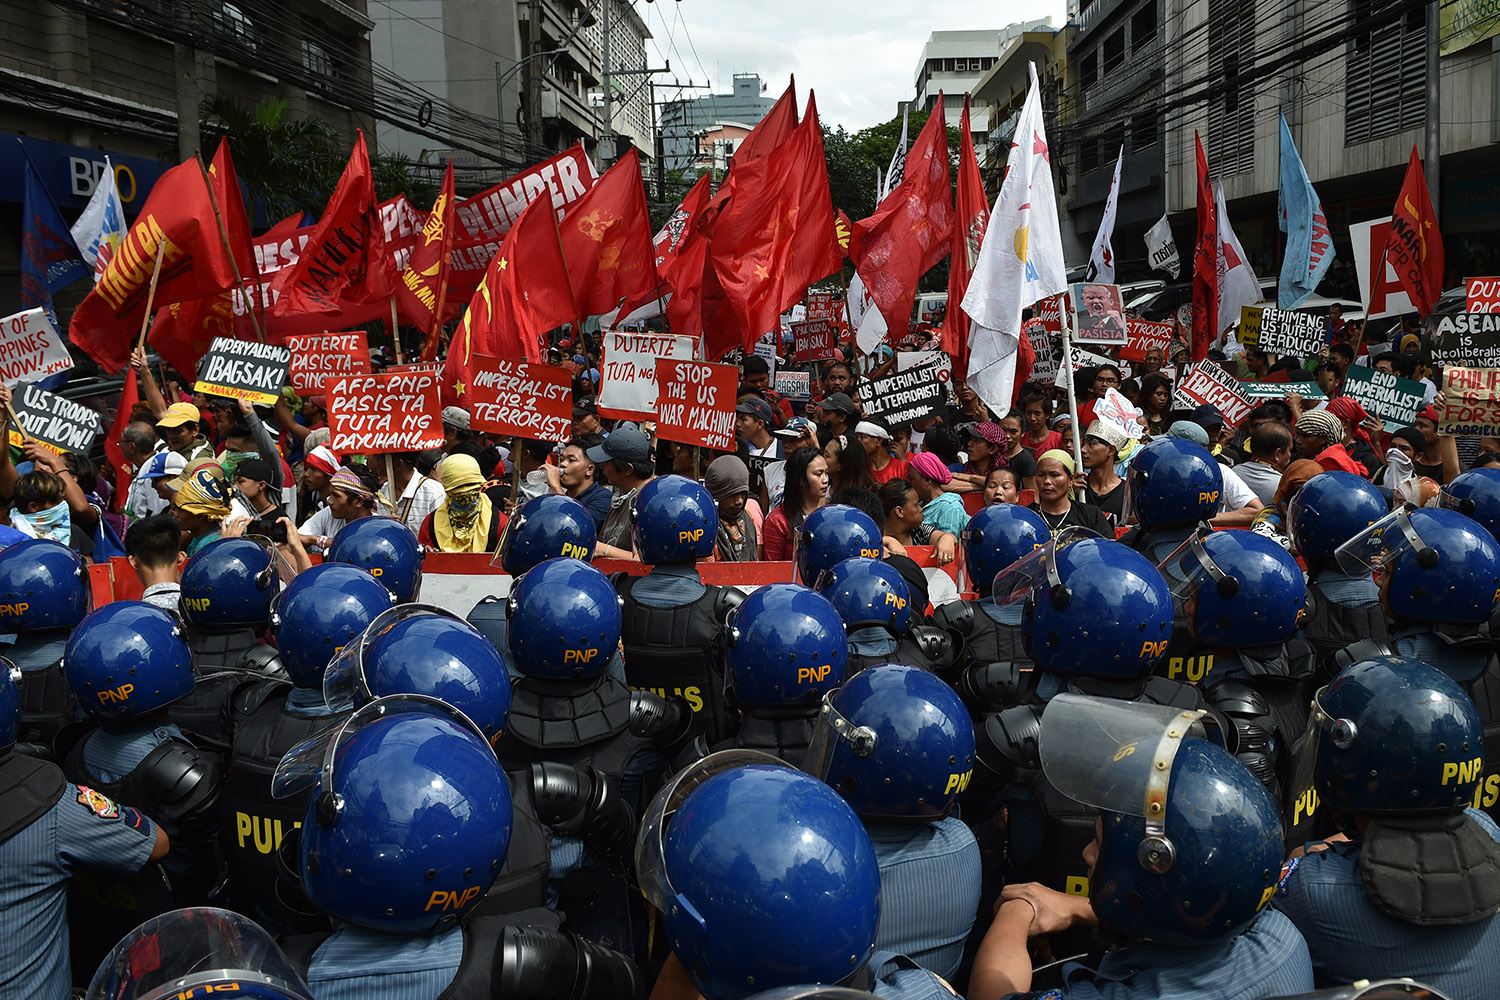 Riot police block protesters during a rally near the U.S. embassy, ahead of the 31st Southeast Asian Nations (ASEAN) Summit, in Manila on Nov. 10. Ted Aljibe/AFP/Getty Images